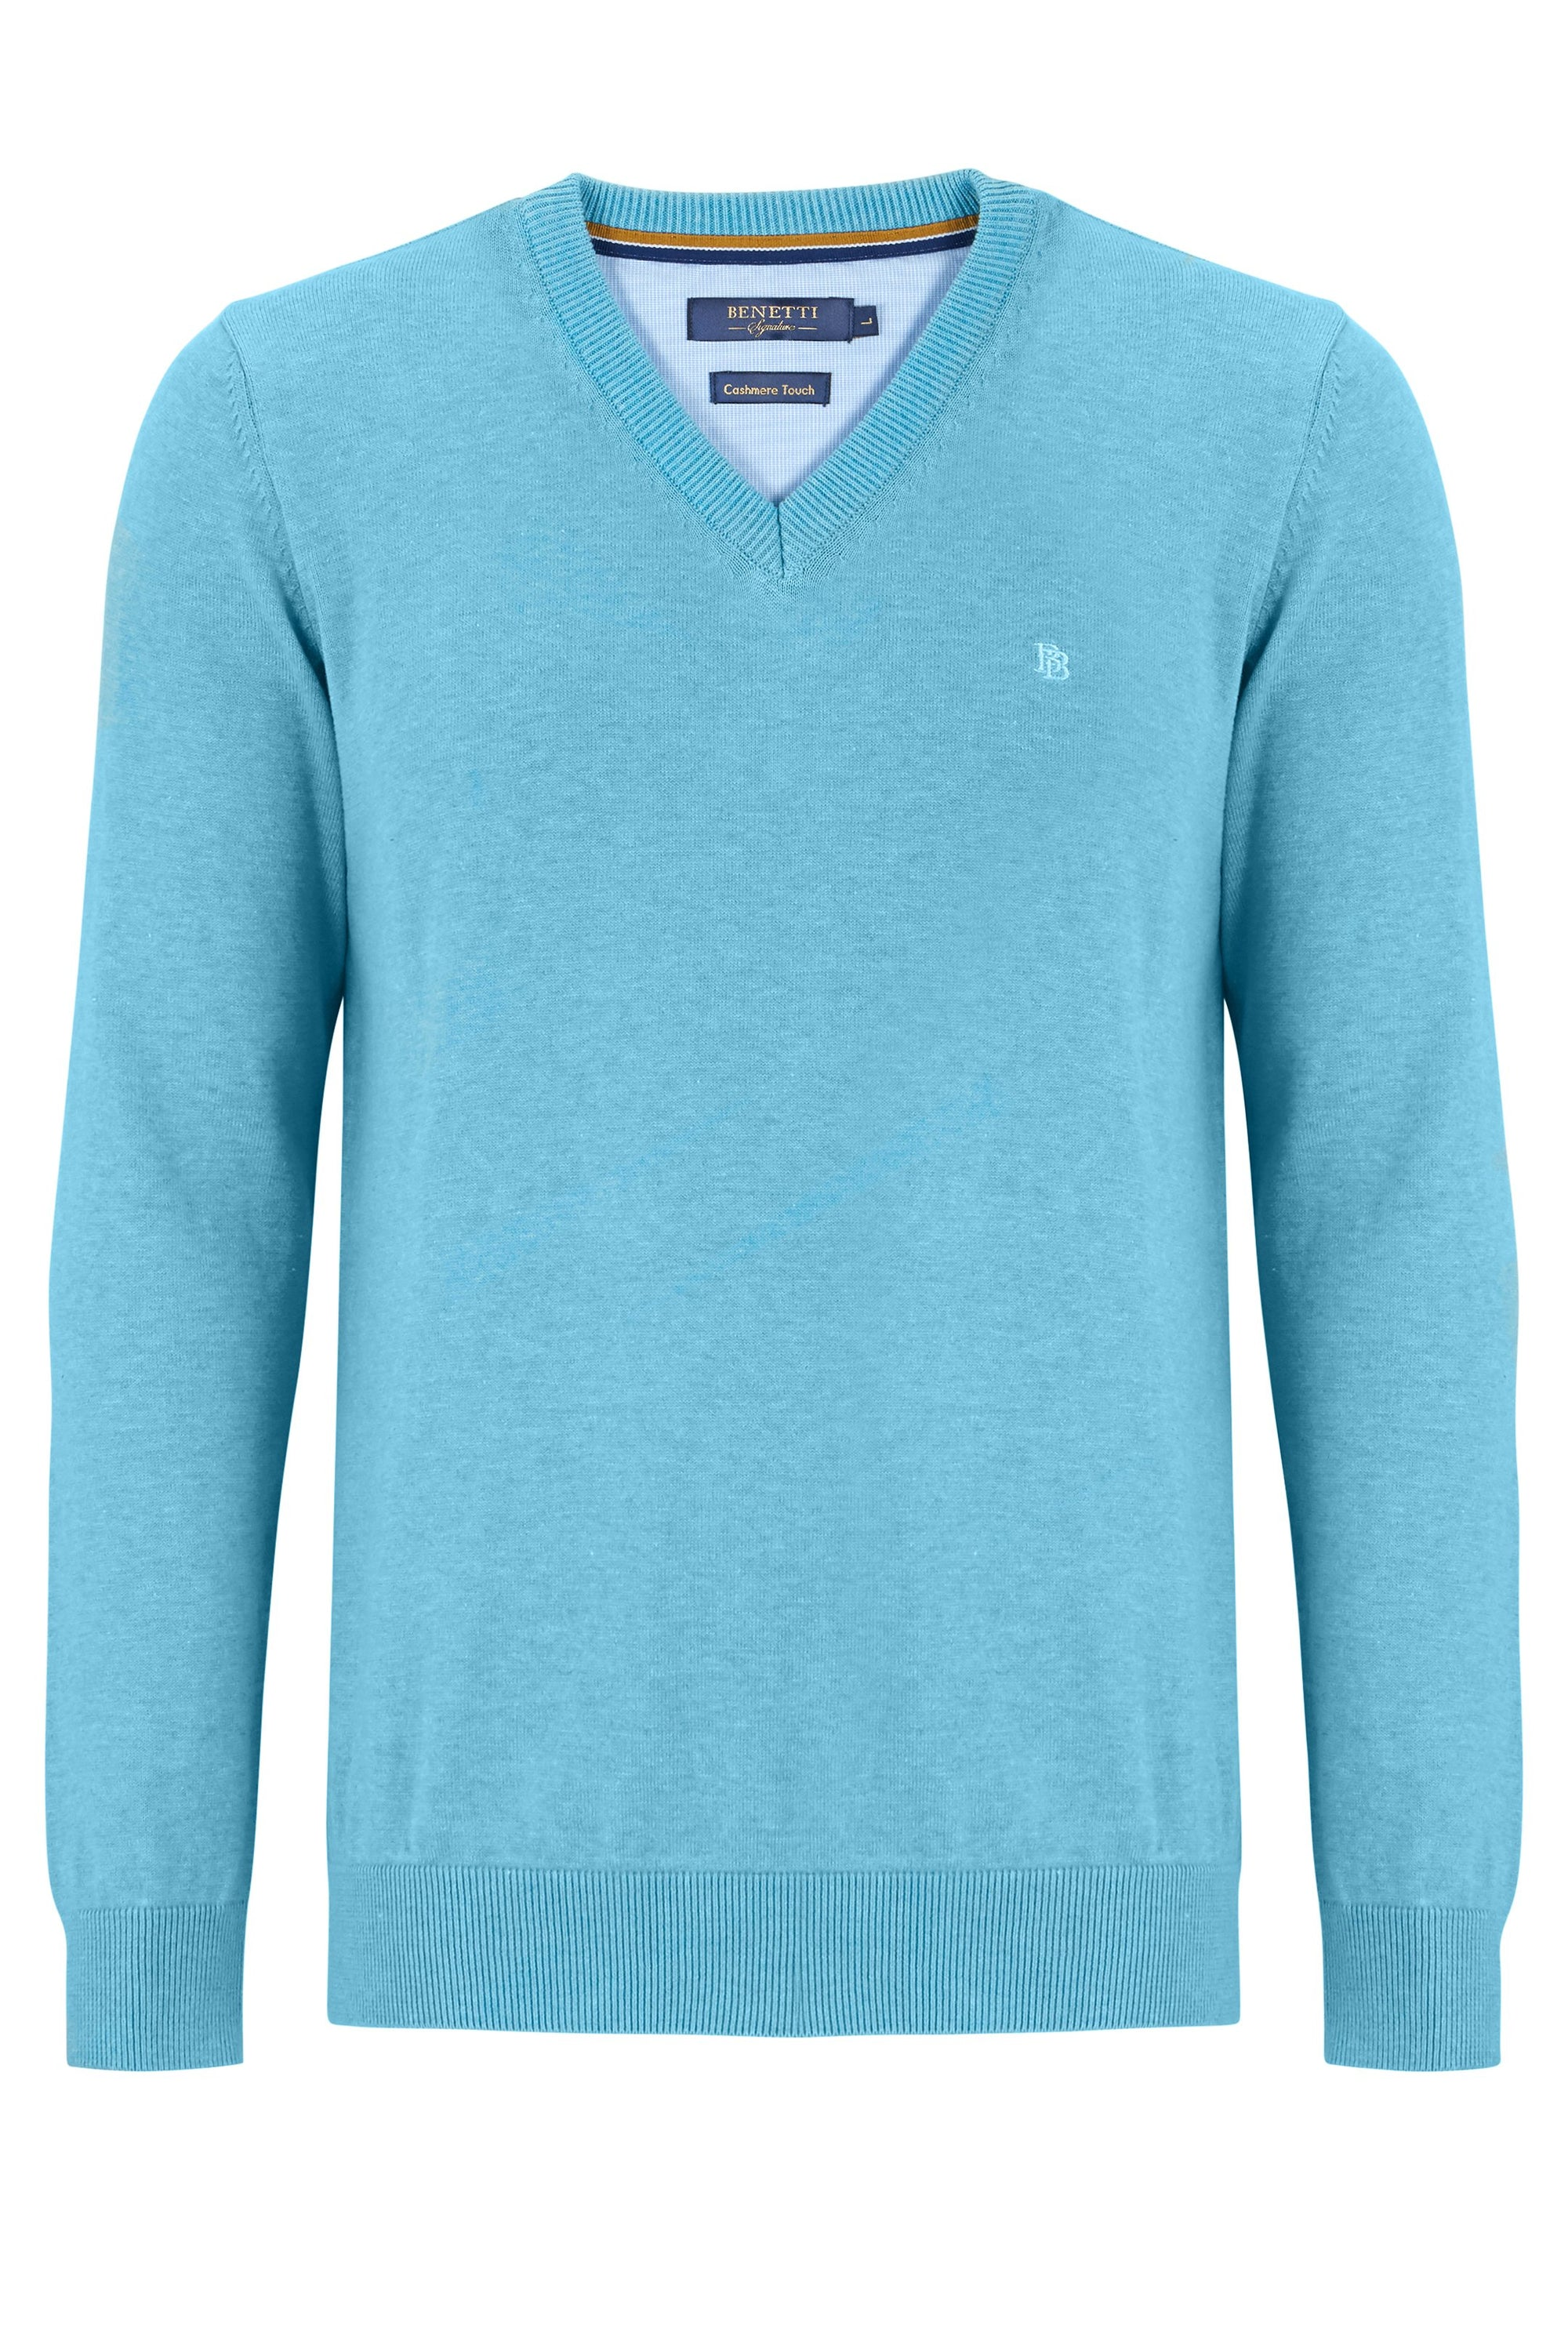 Teal V Neck Jumper